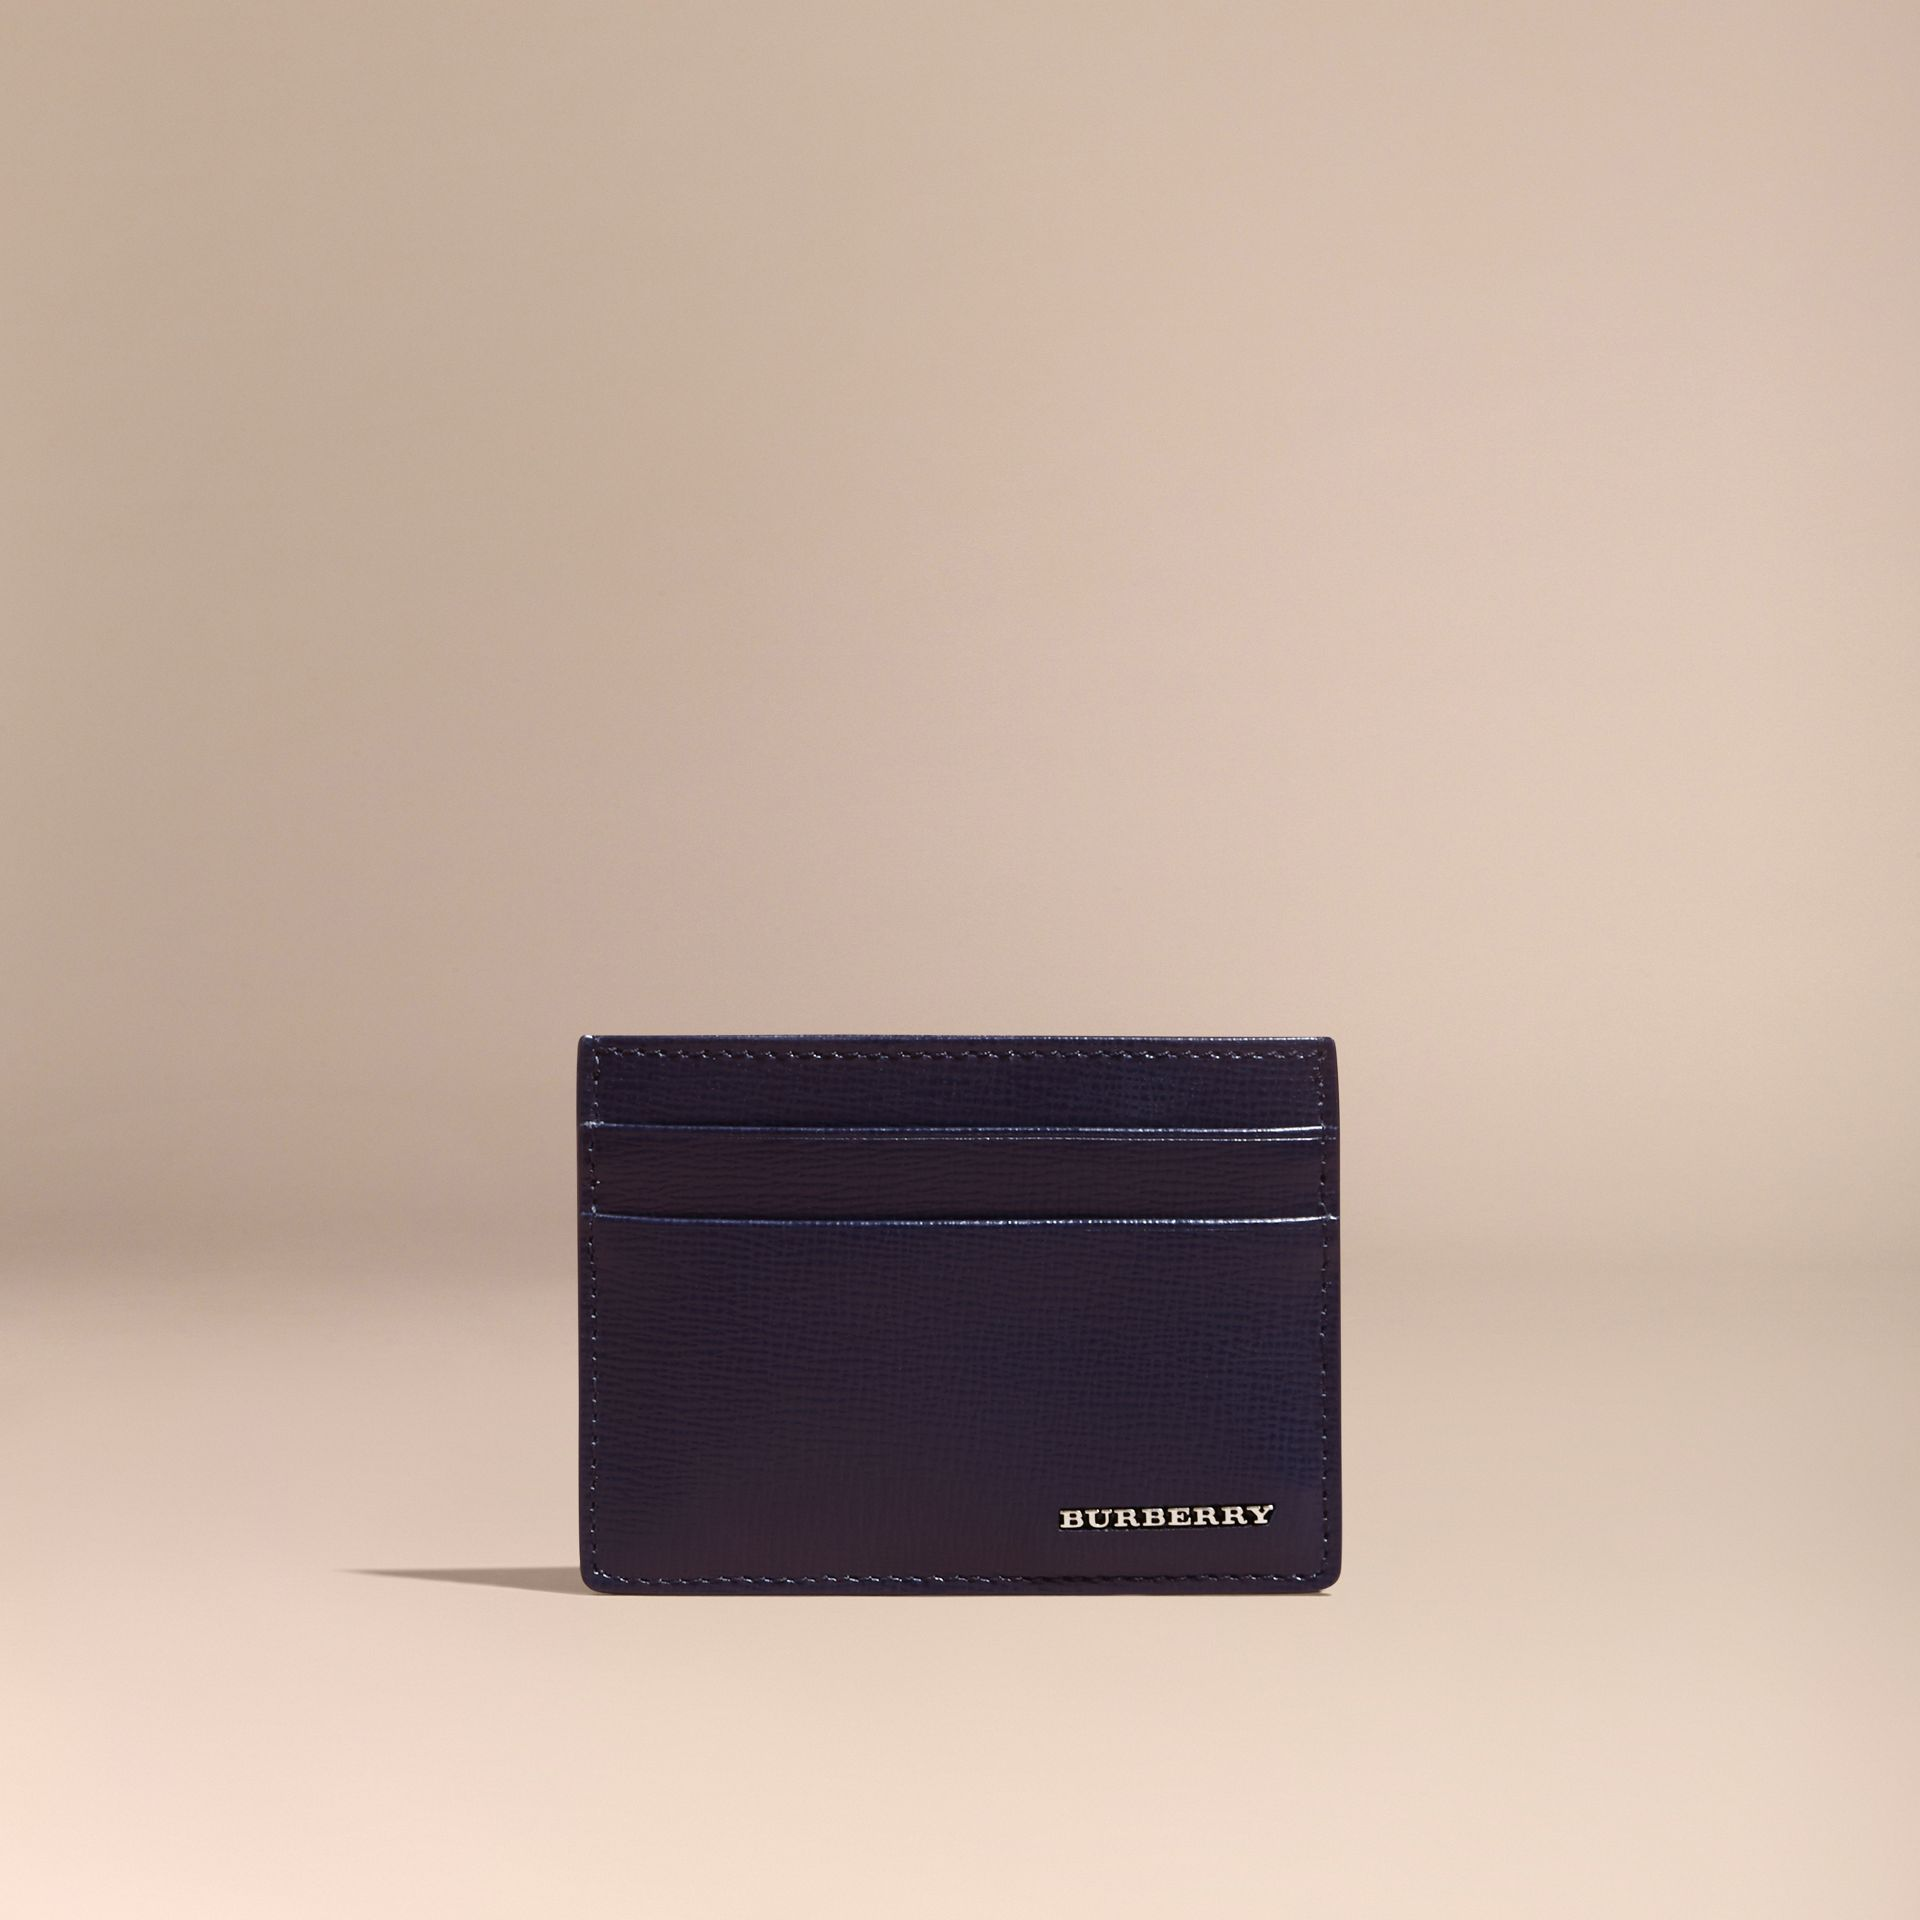 London Leather Card Case in Dark Navy - Men | Burberry - gallery image 6